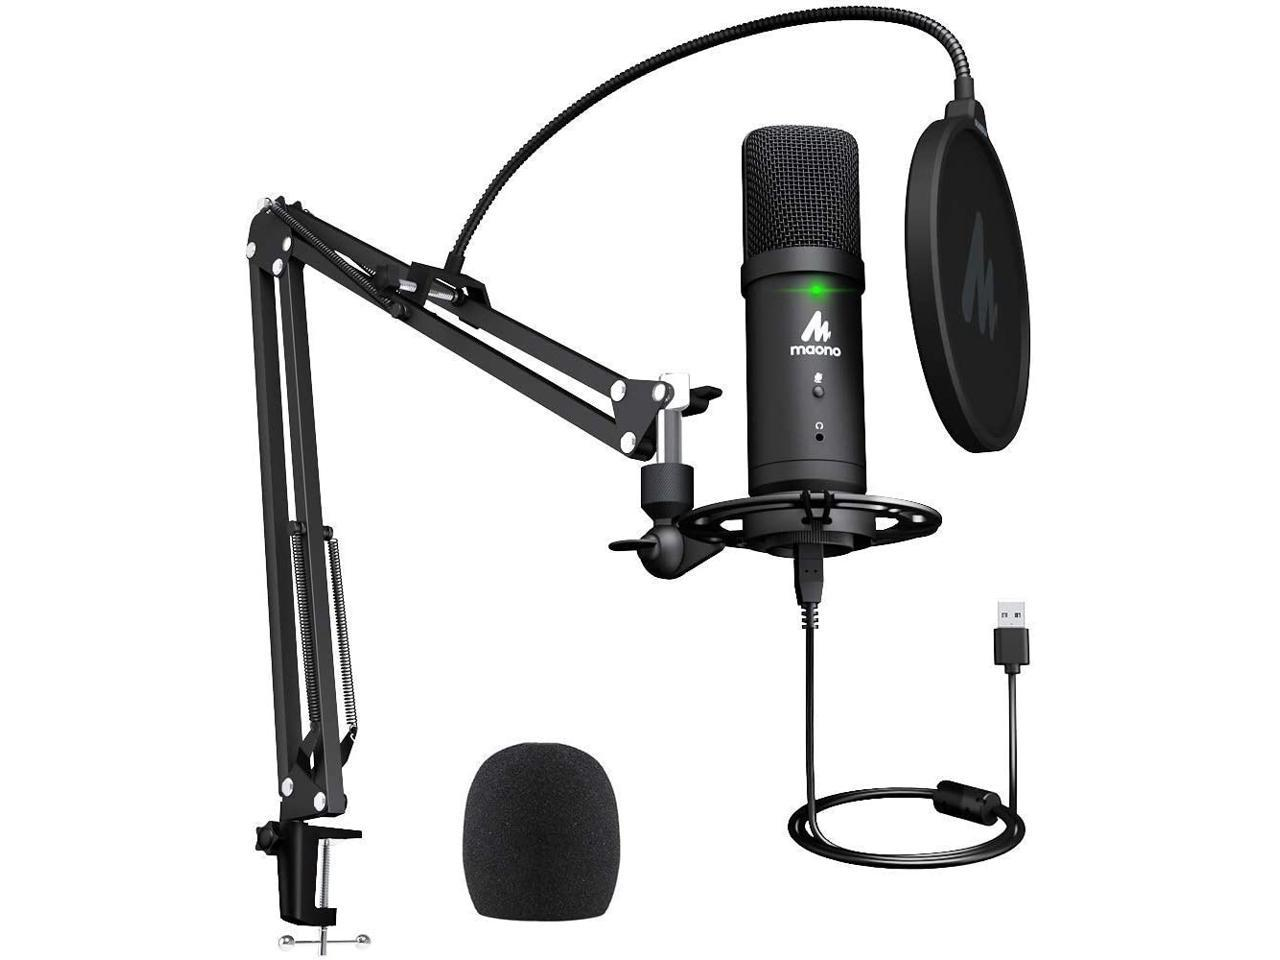 USB Microphone 192KHz/24Bit Zero Latency Monitoring MAONO AU-PM401 USB  Computer Condenser Cardioid Mic with Mute Button for Podcasting, Gaming,  YouTube, Streaming, Recording Music - Newegg.com